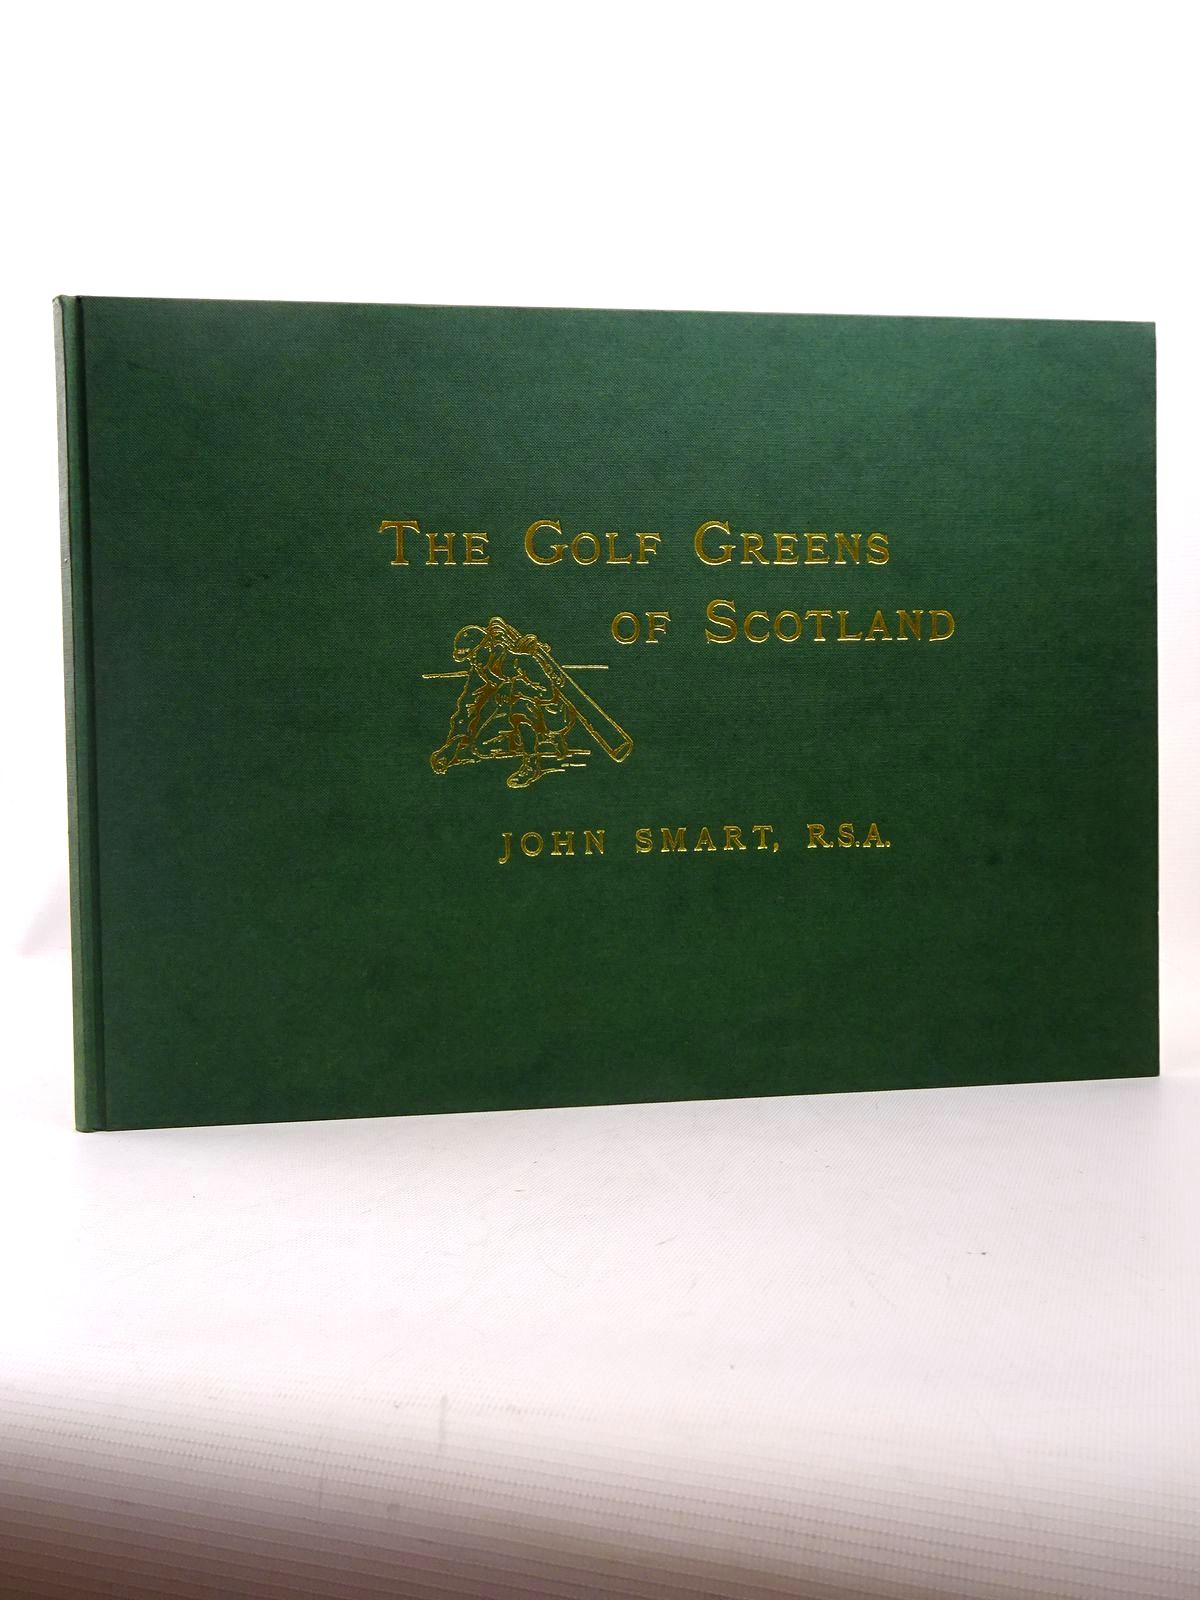 Photo of A ROUND OF THE LINKS: VIEWS OF THE GOLF GREENS OF SCOTLAND written by Hobbs, Michael illustrated by Smart, John Aikman, George published by Harry Margary (STOCK CODE: 1817240)  for sale by Stella & Rose's Books